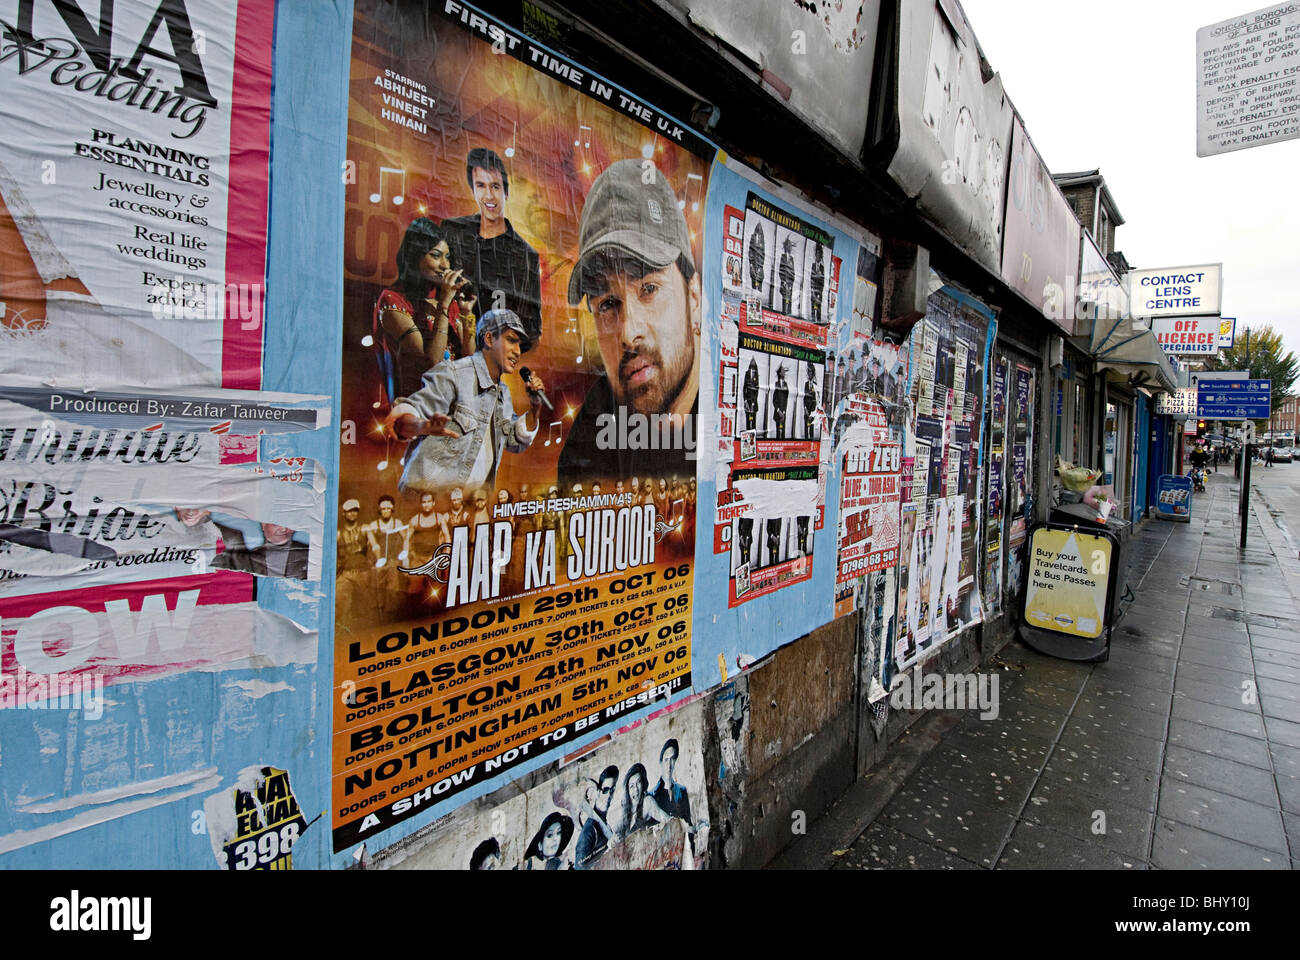 asian music posters plastered in the street in the uk to advertise indian and pakistani music - Stock Image